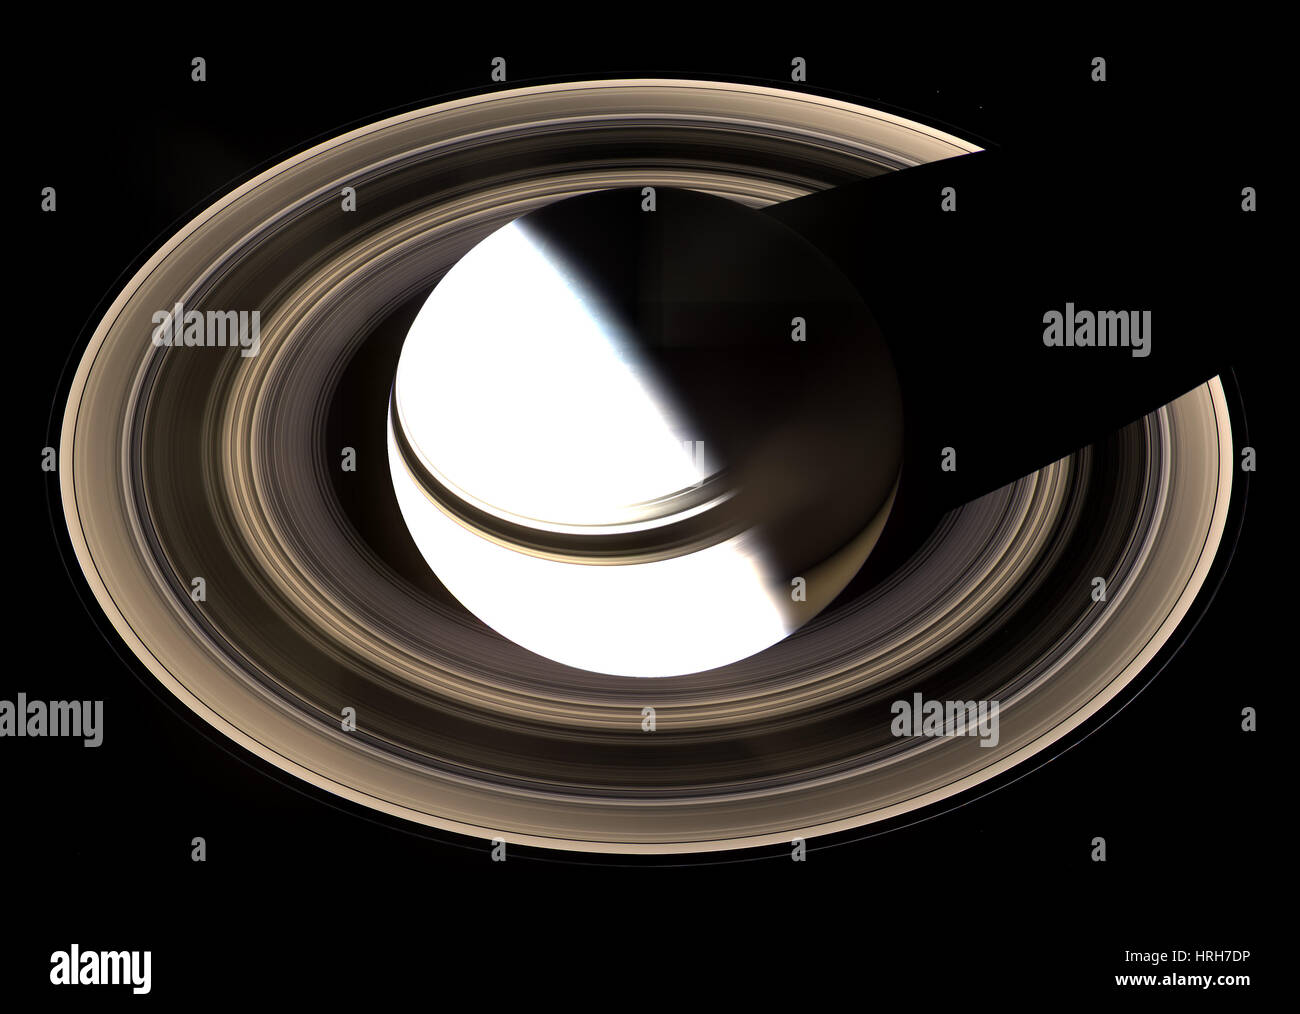 Saturn and its Rings - Stock Image